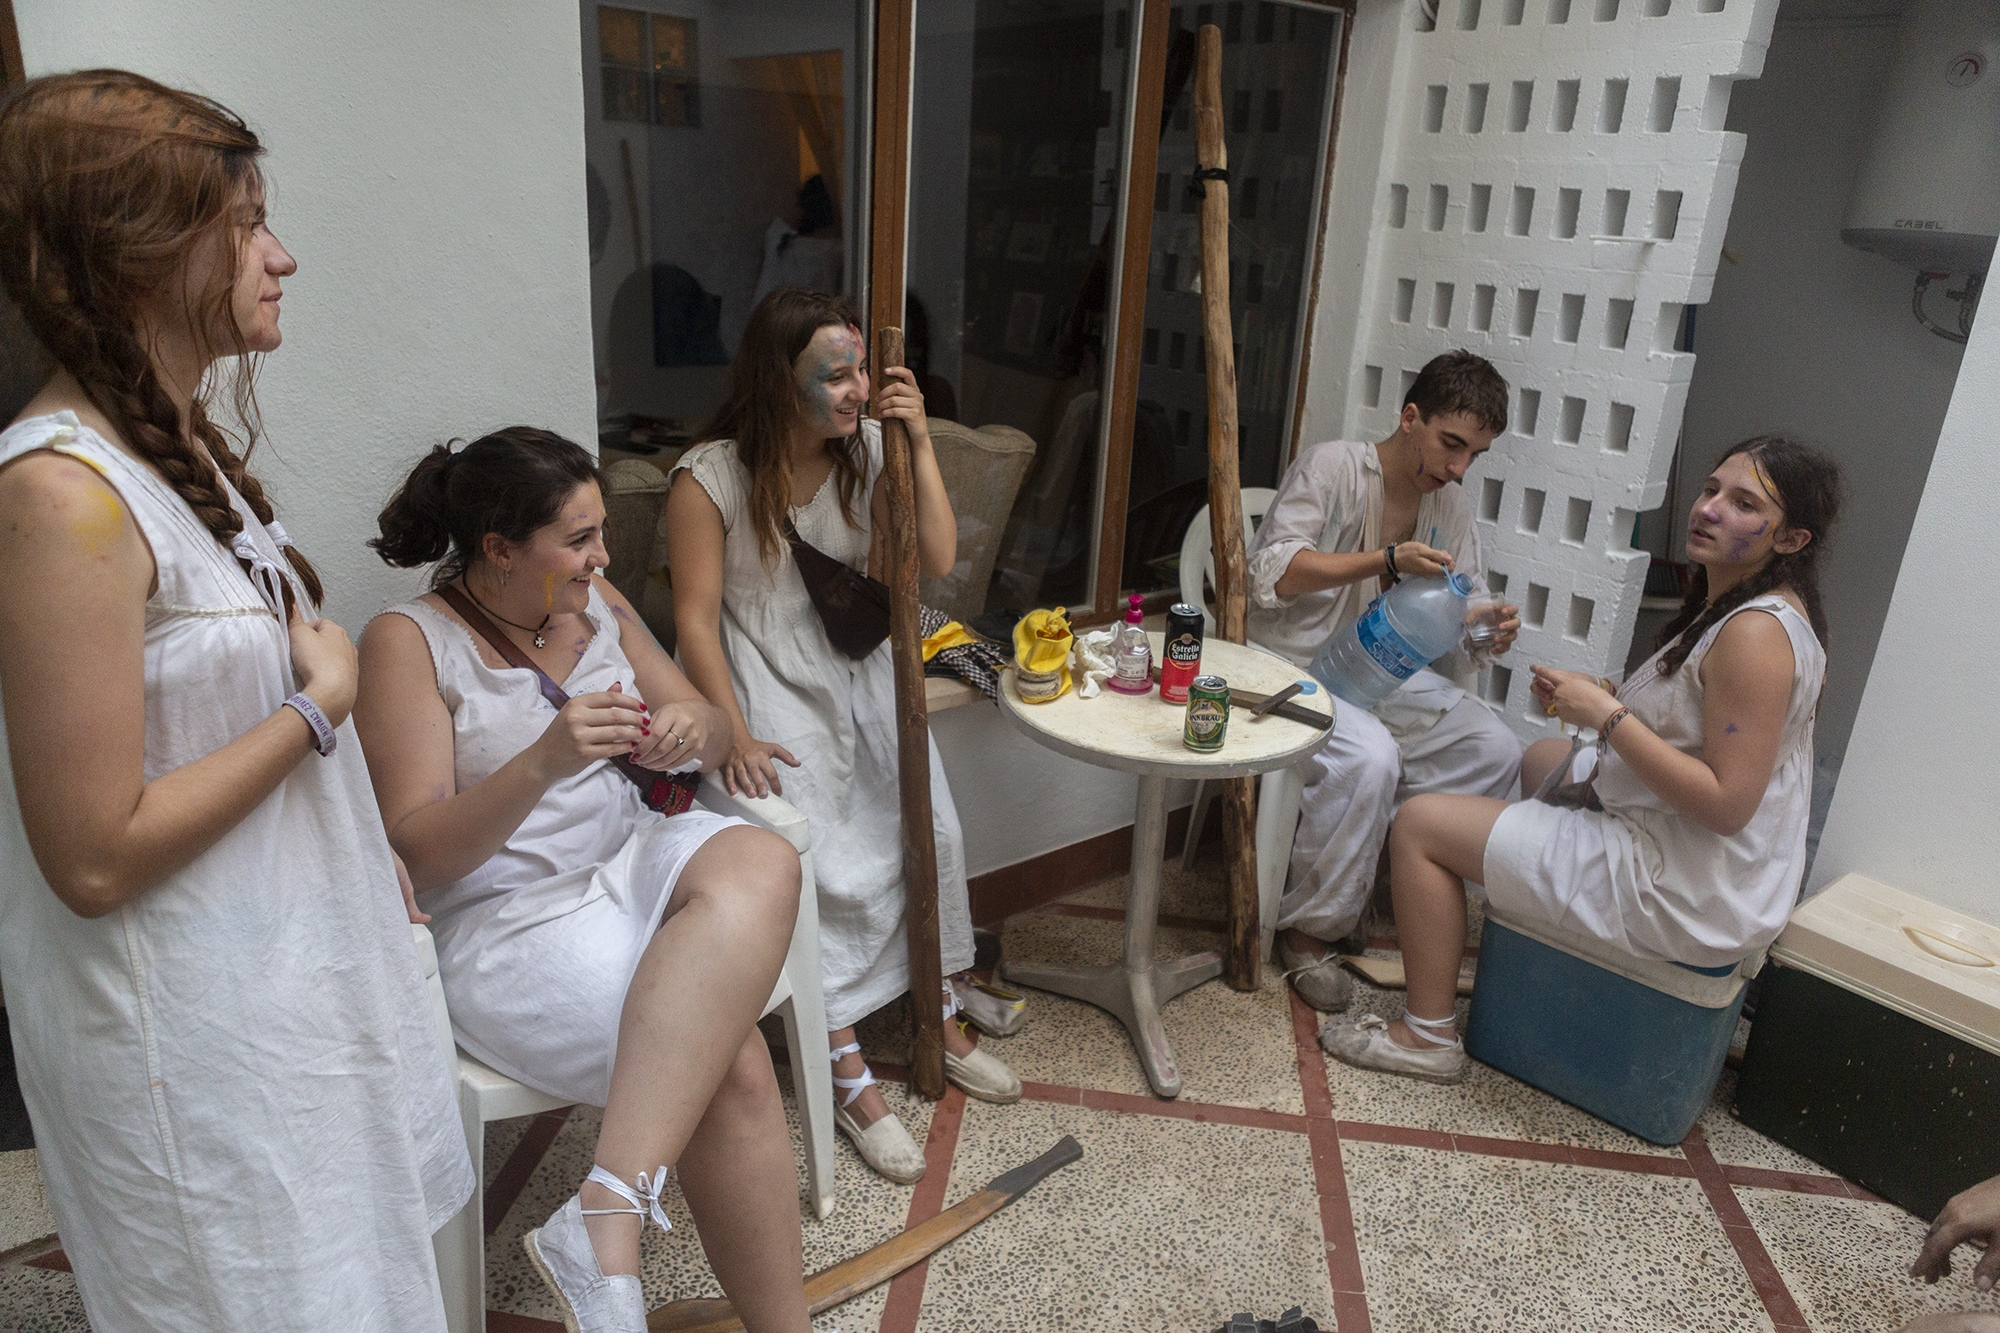 The young women rest after the first part of the battle.  Pollença, Mallorca, August 2 2019.